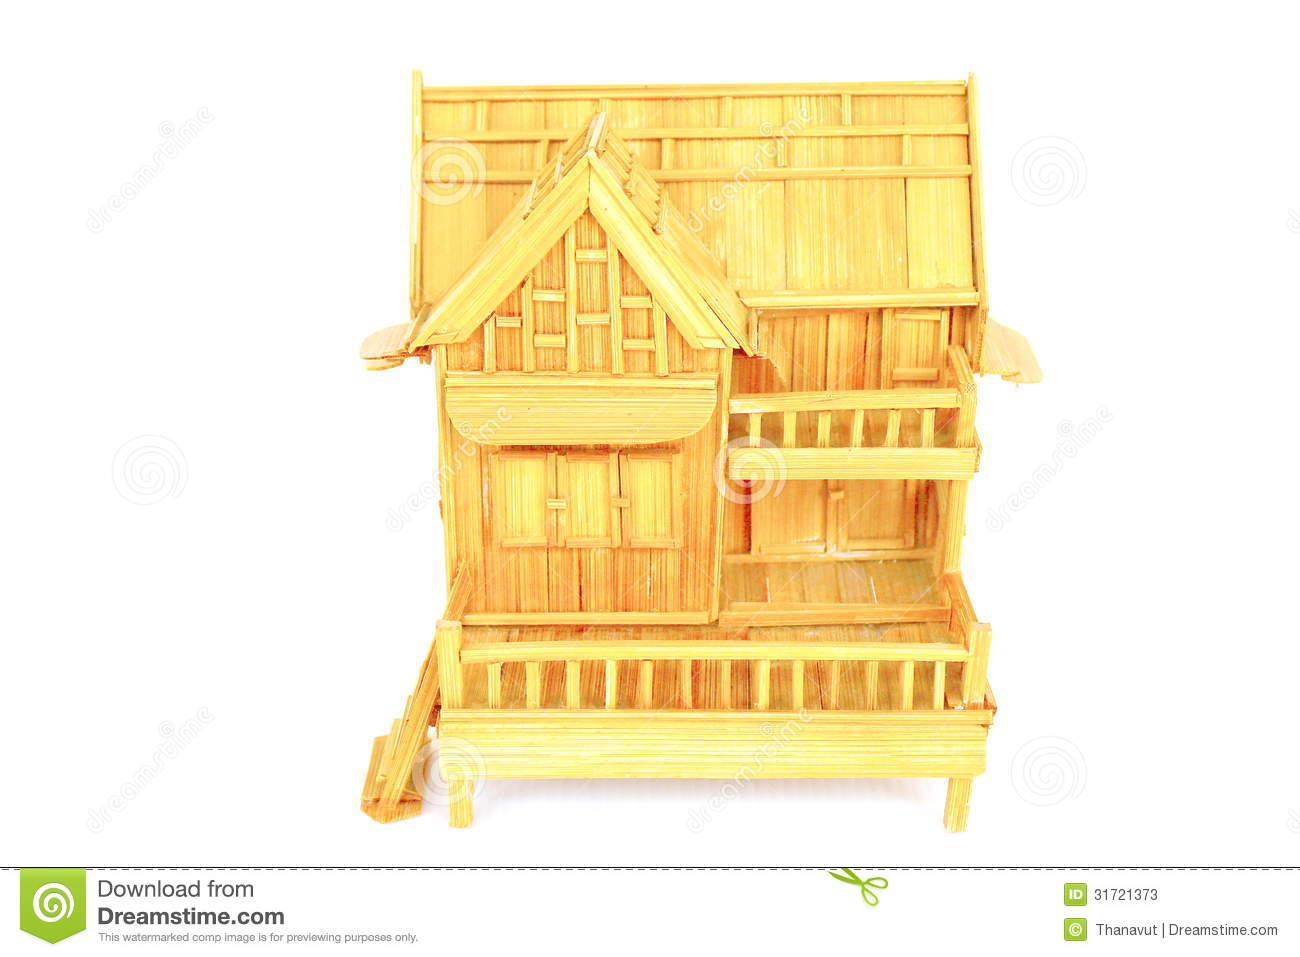 Home models stock photos image 31721373 for Mini wooden house